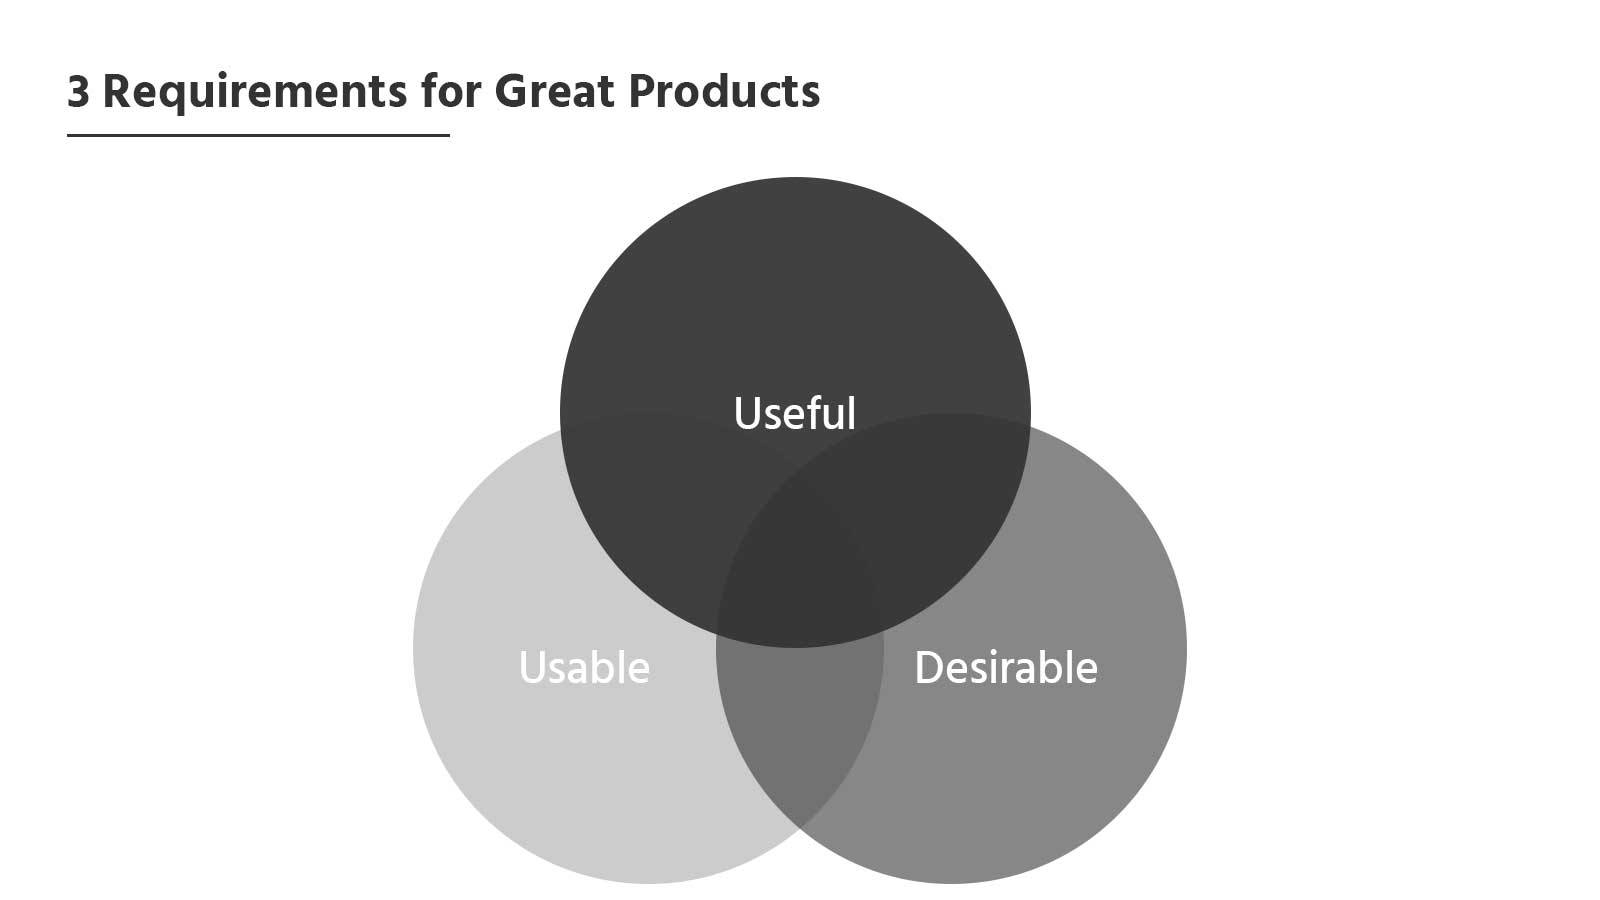 3 important requirements for the user experience of products: Be useful, useful and desirable